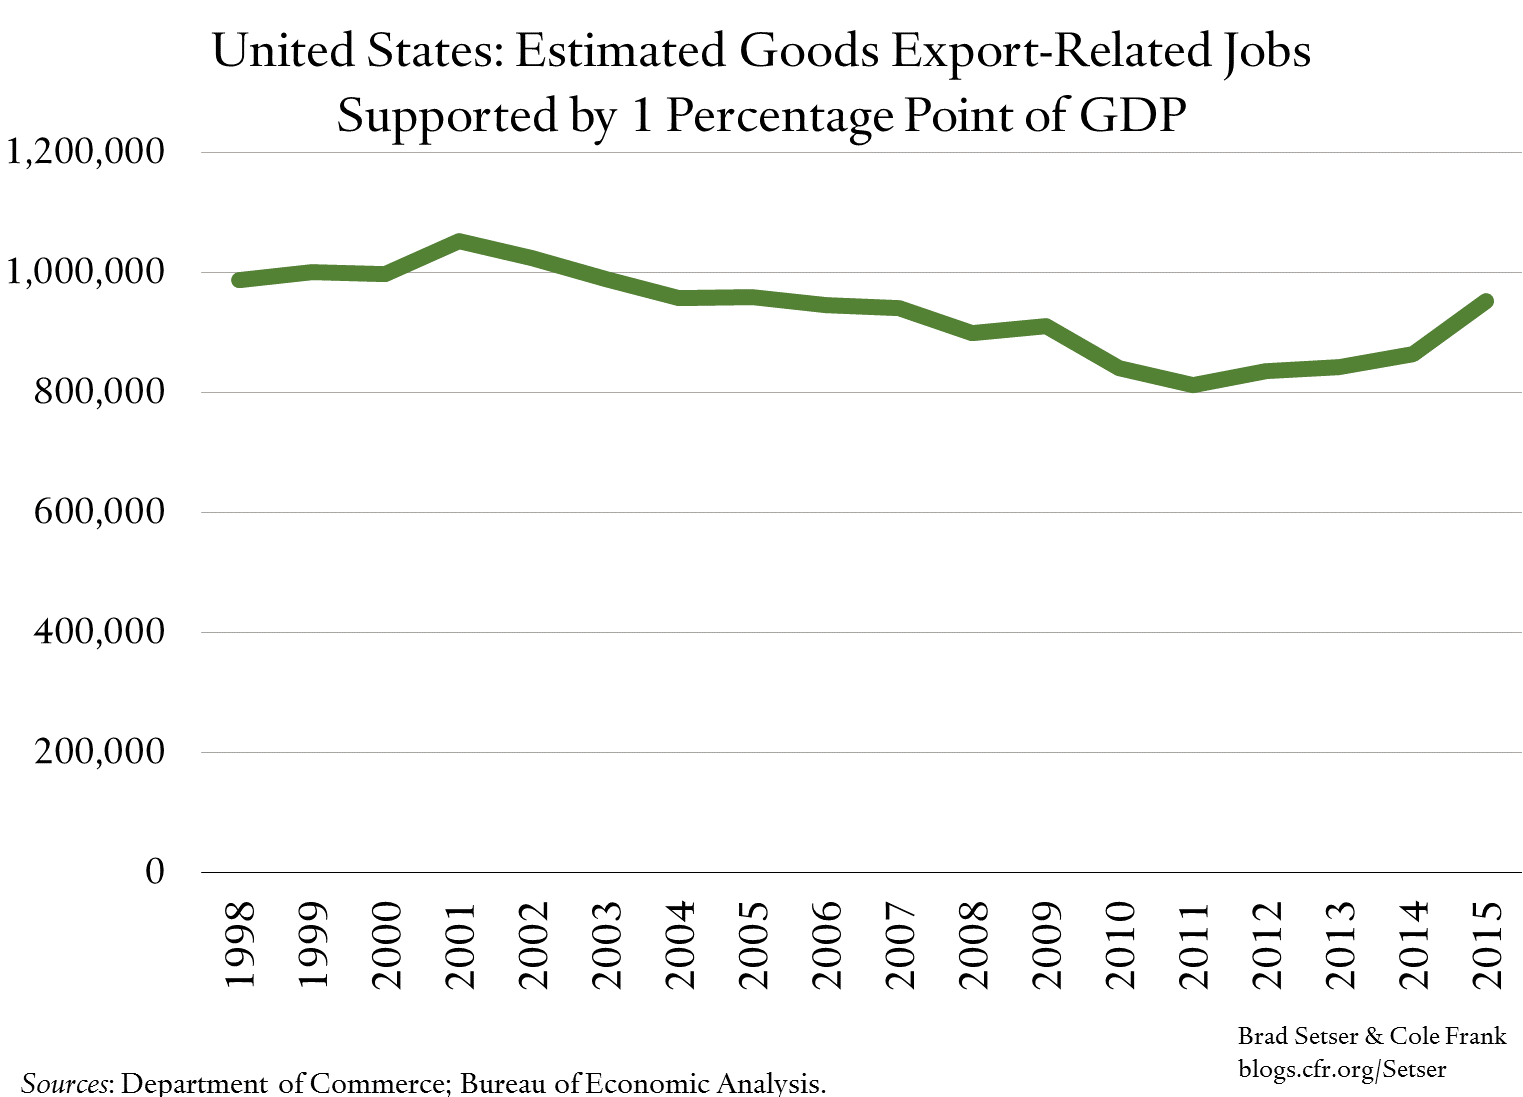 export-jobs-supported-by-1-pp-of-gdp-us